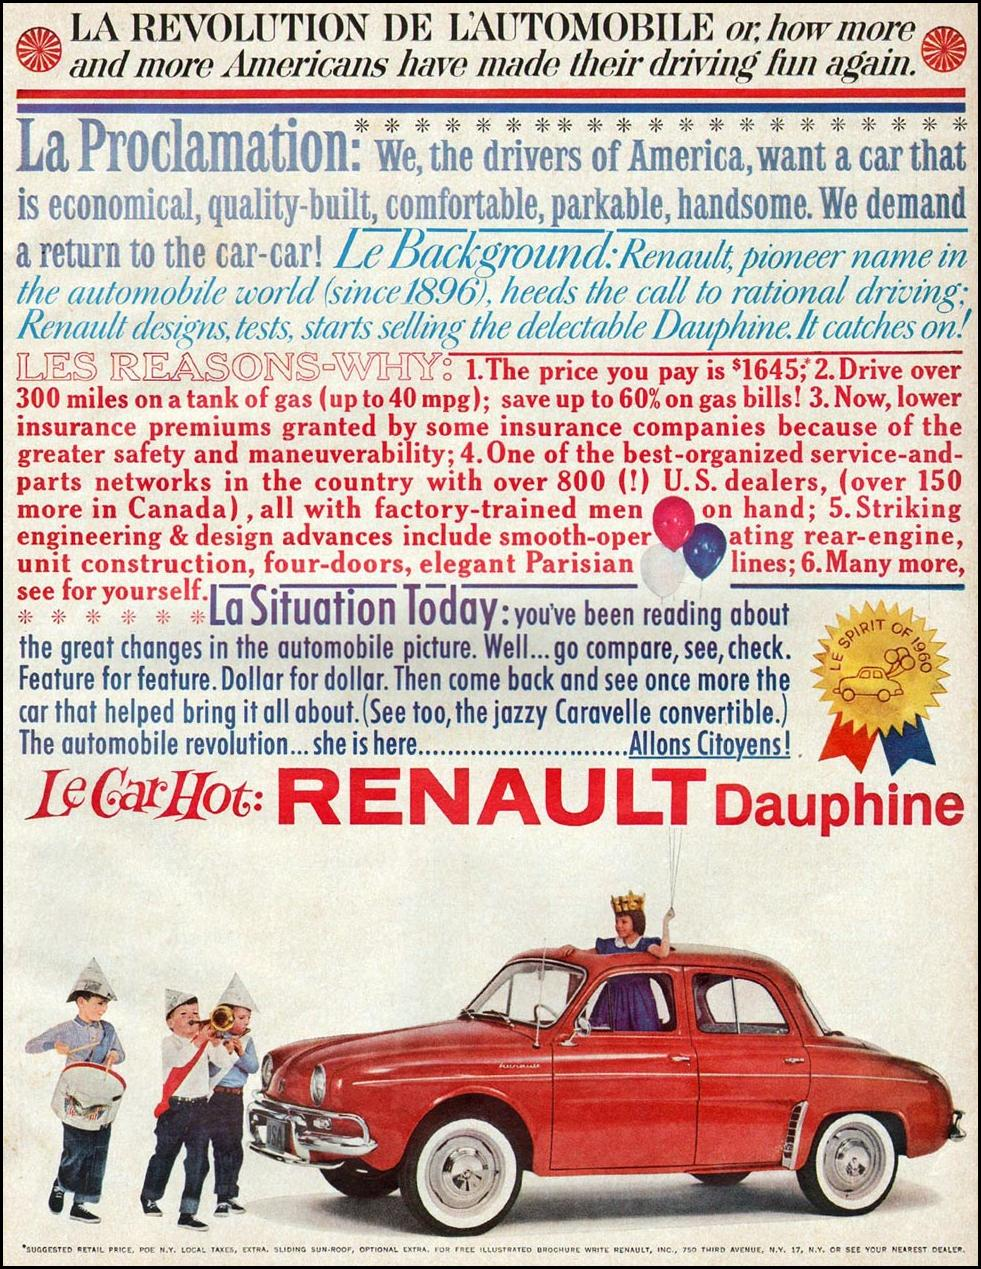 RENAULT DAUPHINE BETTER HOMES AND GARDENS 03/01/1960 p. 175